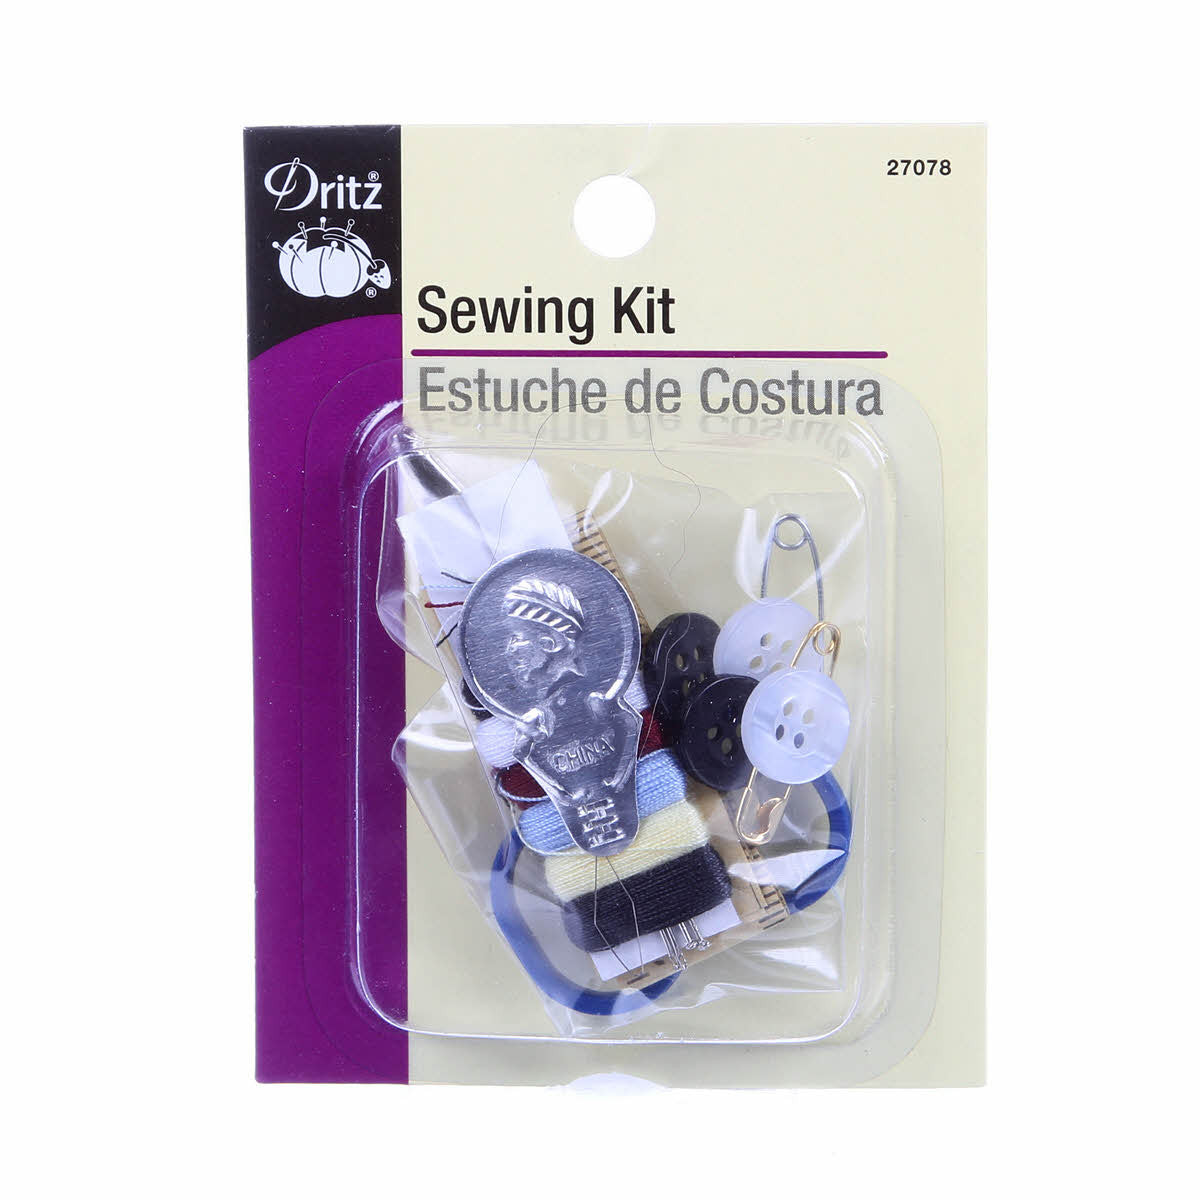 Dritz Travel Sewing Kit